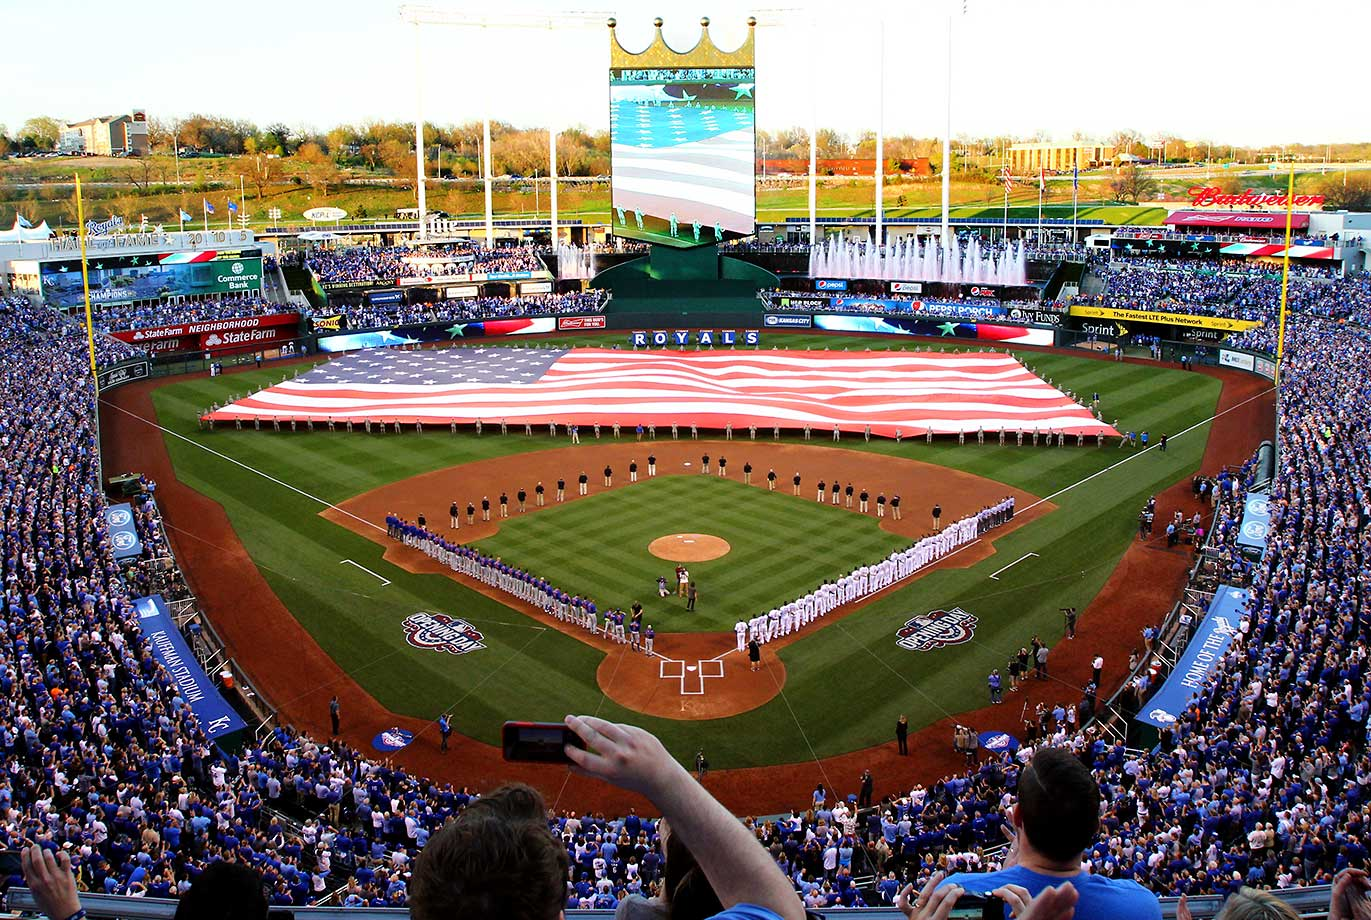 A view of Kauffman Stadium prior to the opening day game between the Kansas City Royals and the New York Mets.